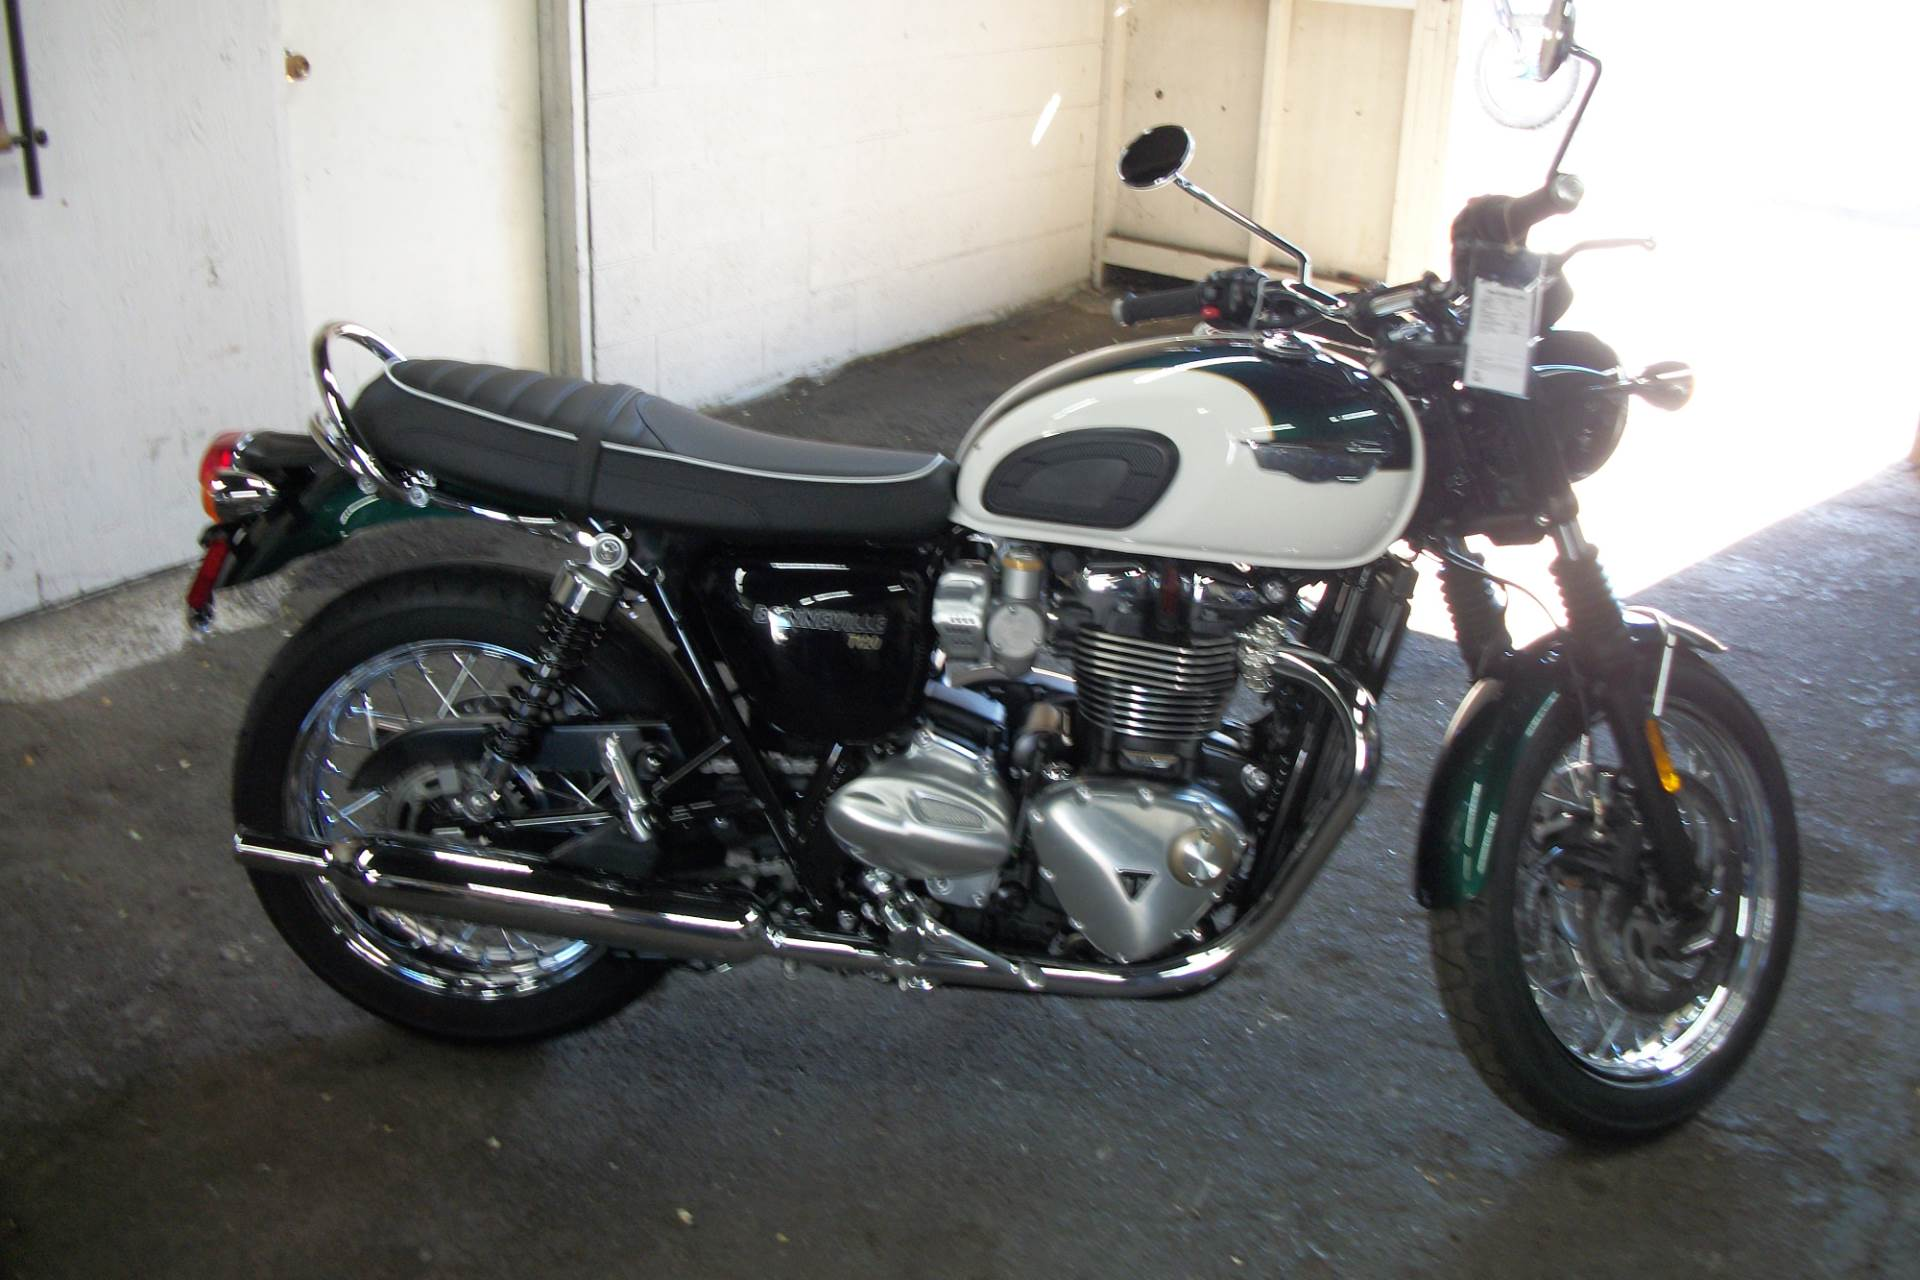 New 2019 Triumph Bonneville T120 Motorcycles In Simi Valley Ca